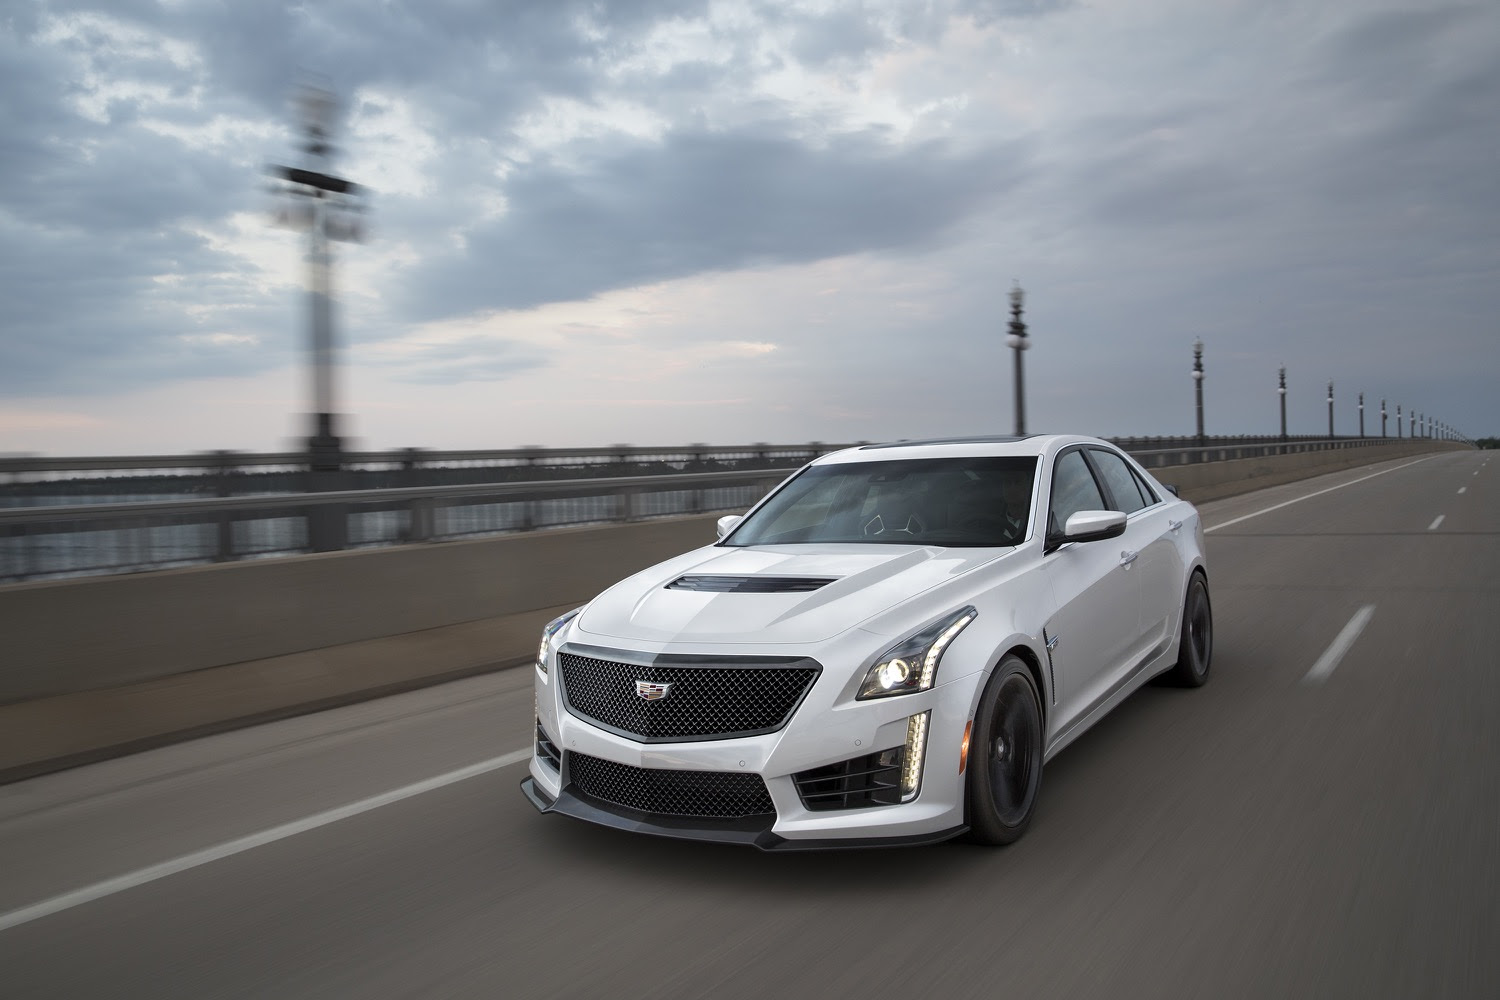 Carbon Black Sport Package Makes Its Way To 2017 CTS-V Sedan